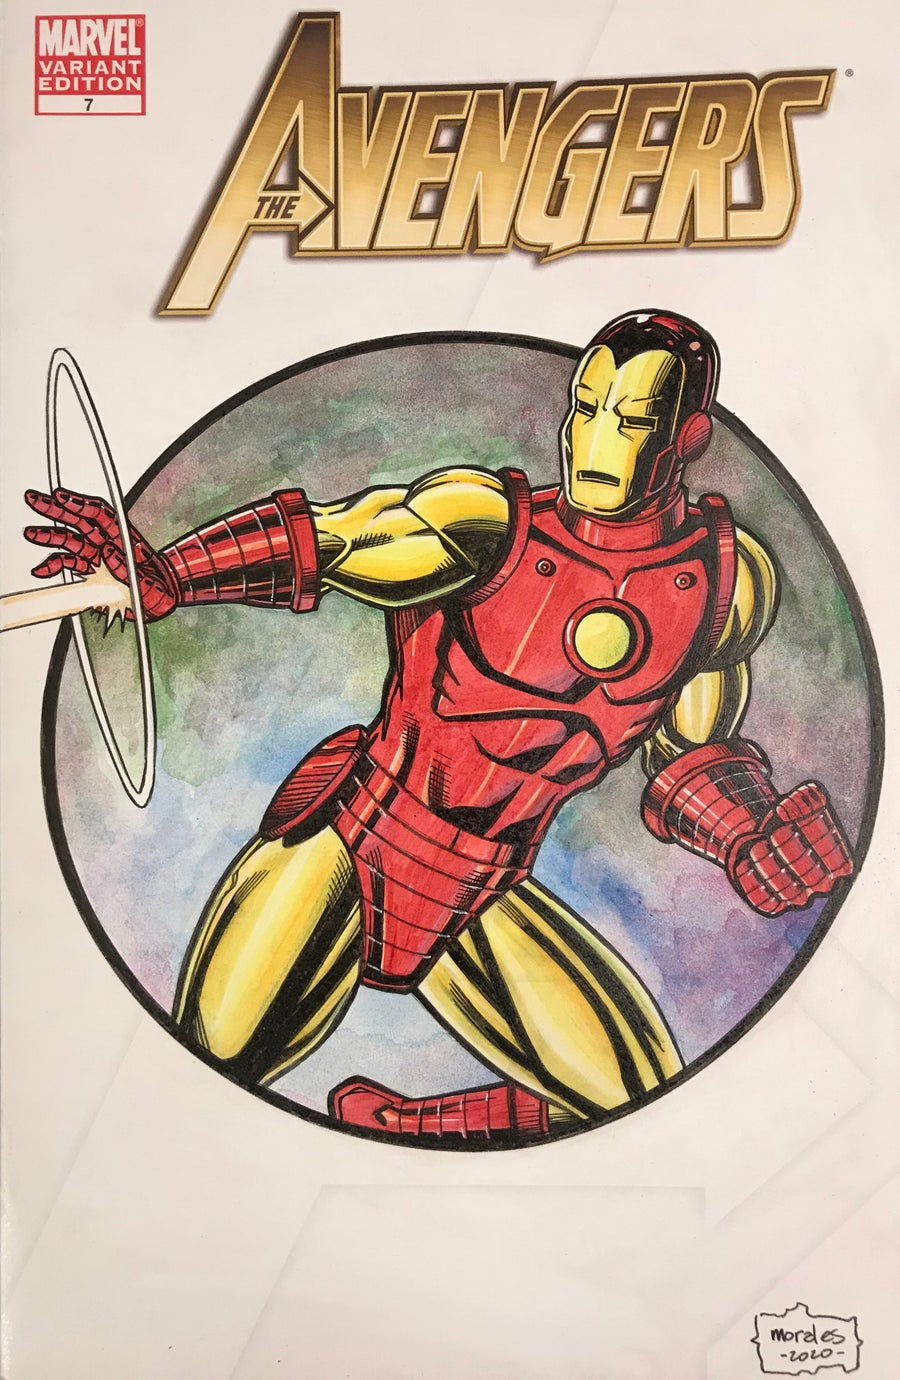 Image of Avengers Iron Man Sketchcover